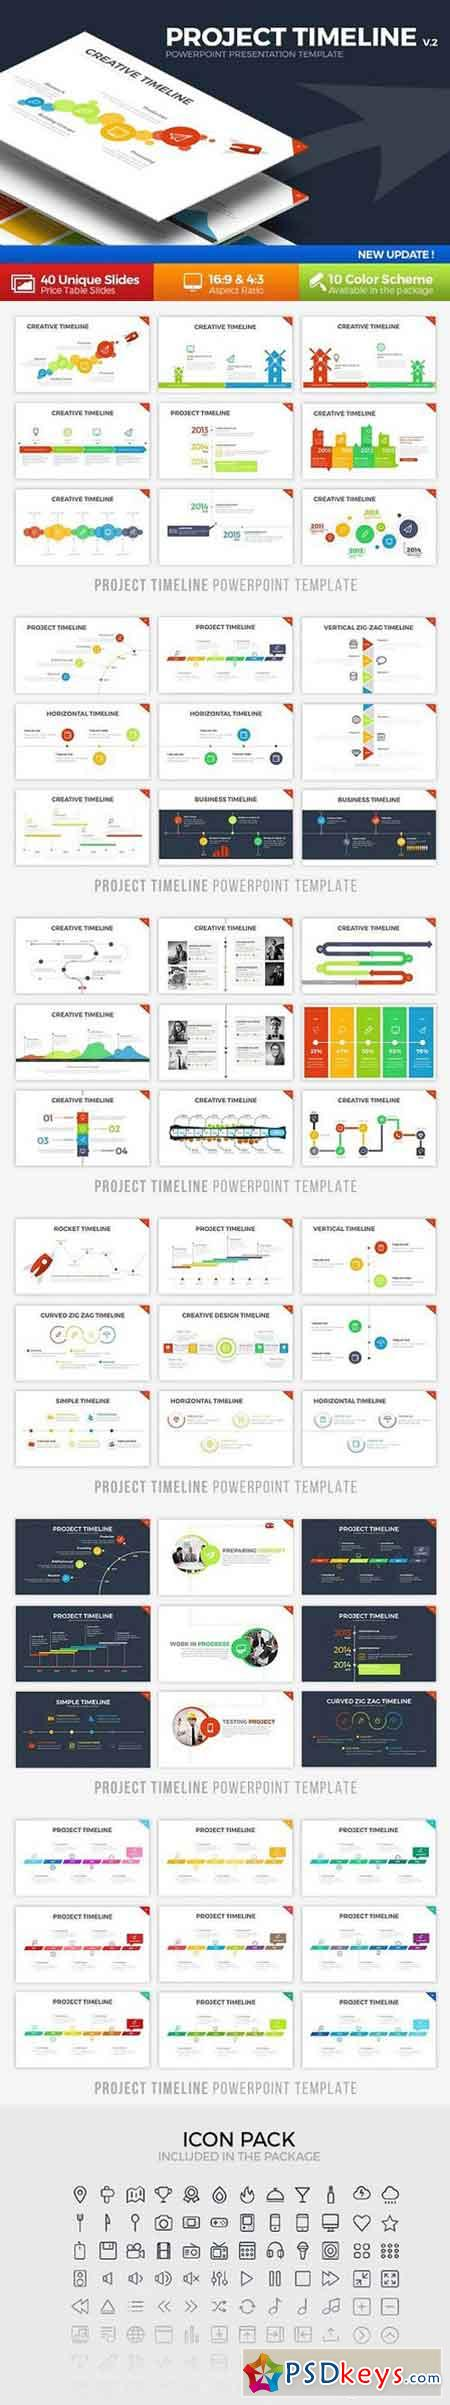 Project Timeline Powerpoint Template Free Download - Project timeline powerpoint template